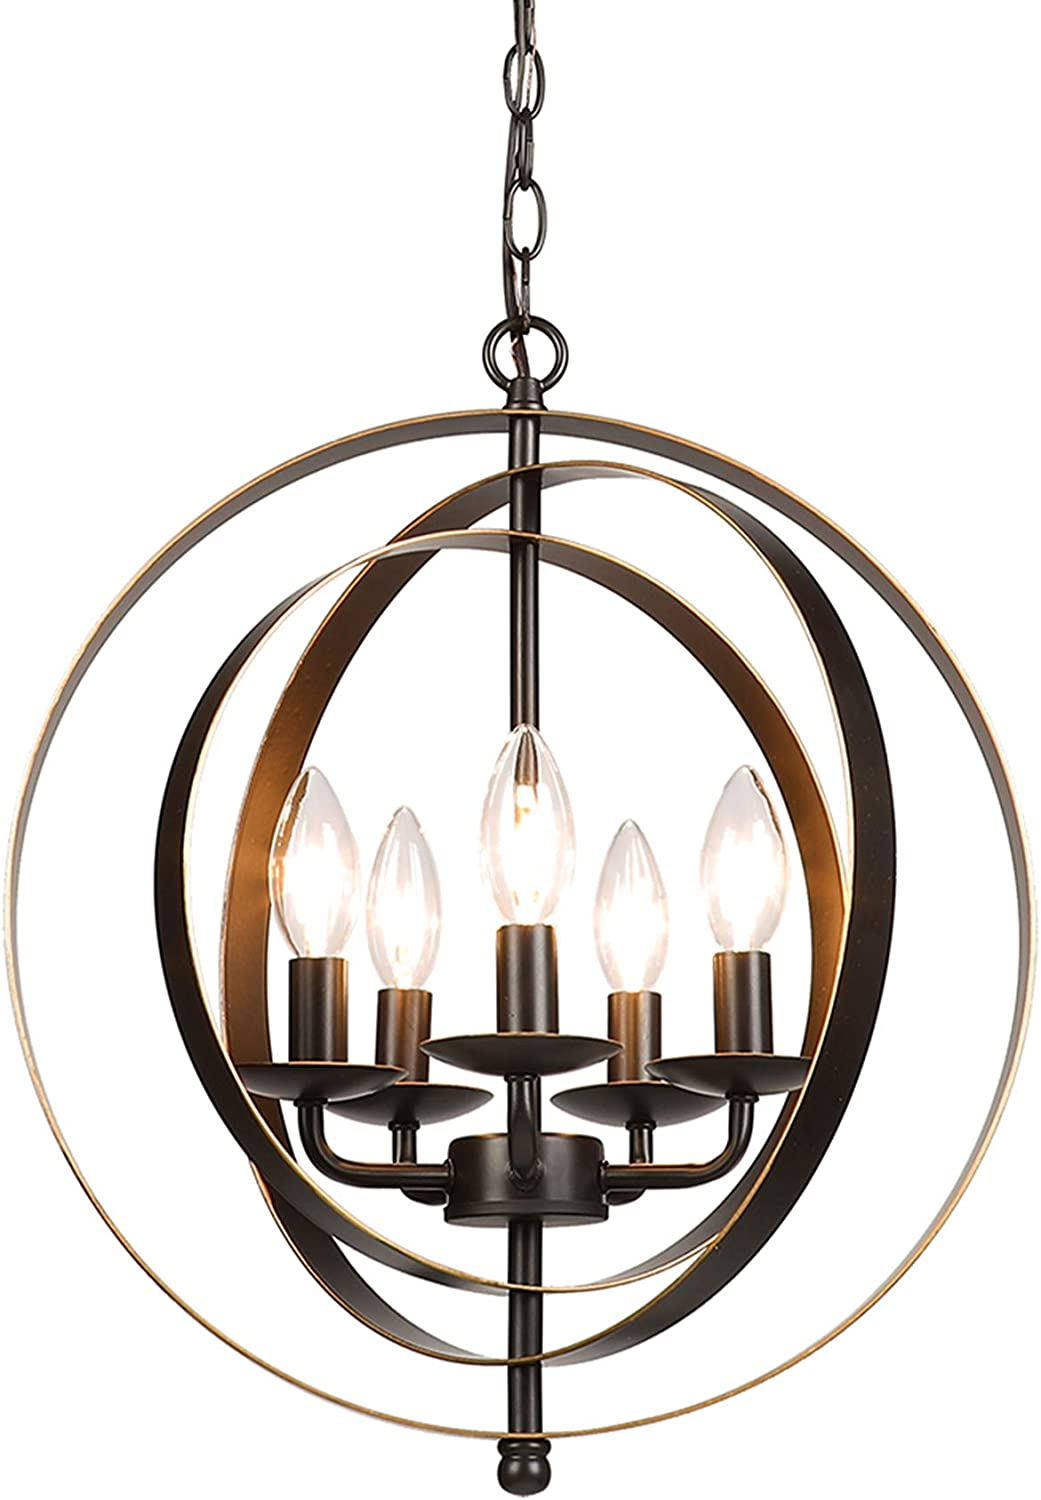 CO-Z 5 Light Orb Chandelier, Sphere Orb Hanging Lights for Dining Room Entryway Foyer Kitchen Bedroom, Antique Bronze Rustic Sphere Industrial Globe Farmhouse Pendant Lighting Ceiling Light Fixture